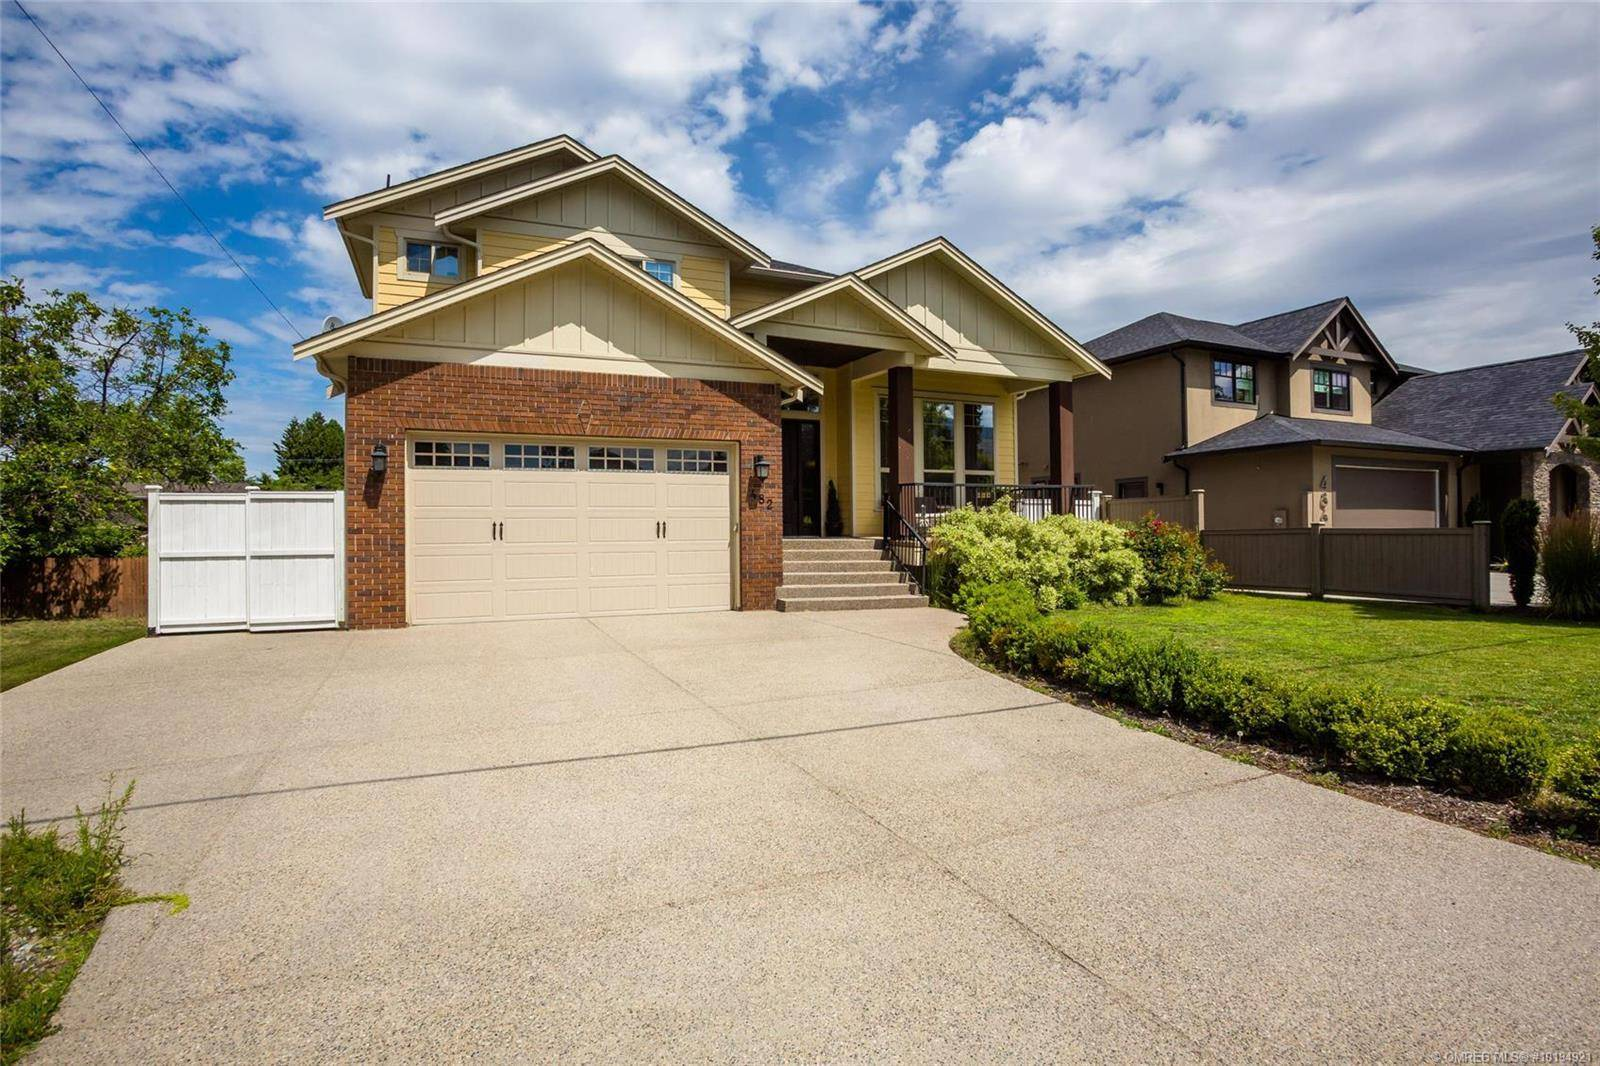 House for sale at 482 Knowles Rd Kelowna British Columbia - MLS: 10194921